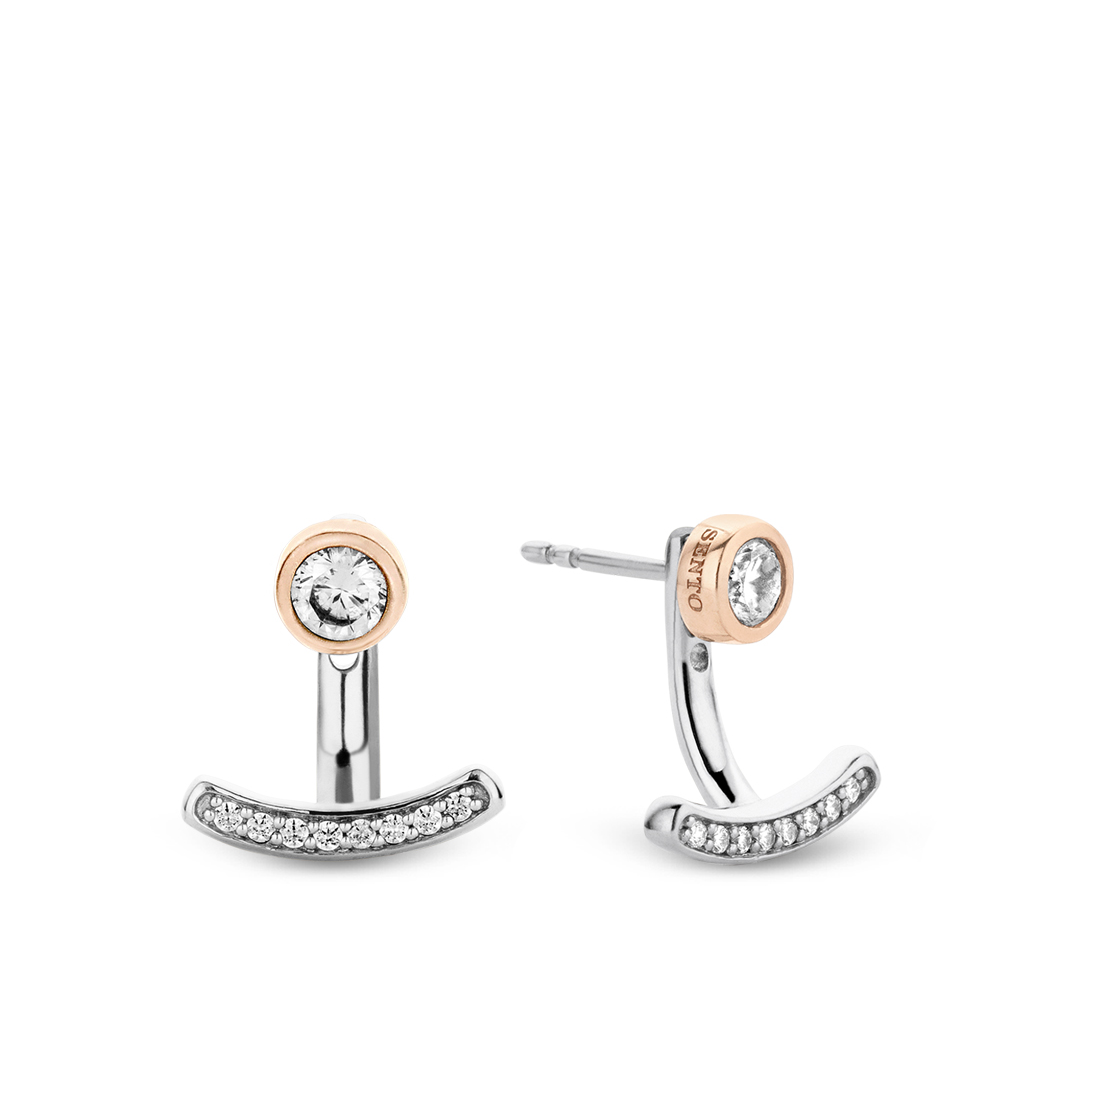 TI SENTO - Milano Earrings 7774ZR